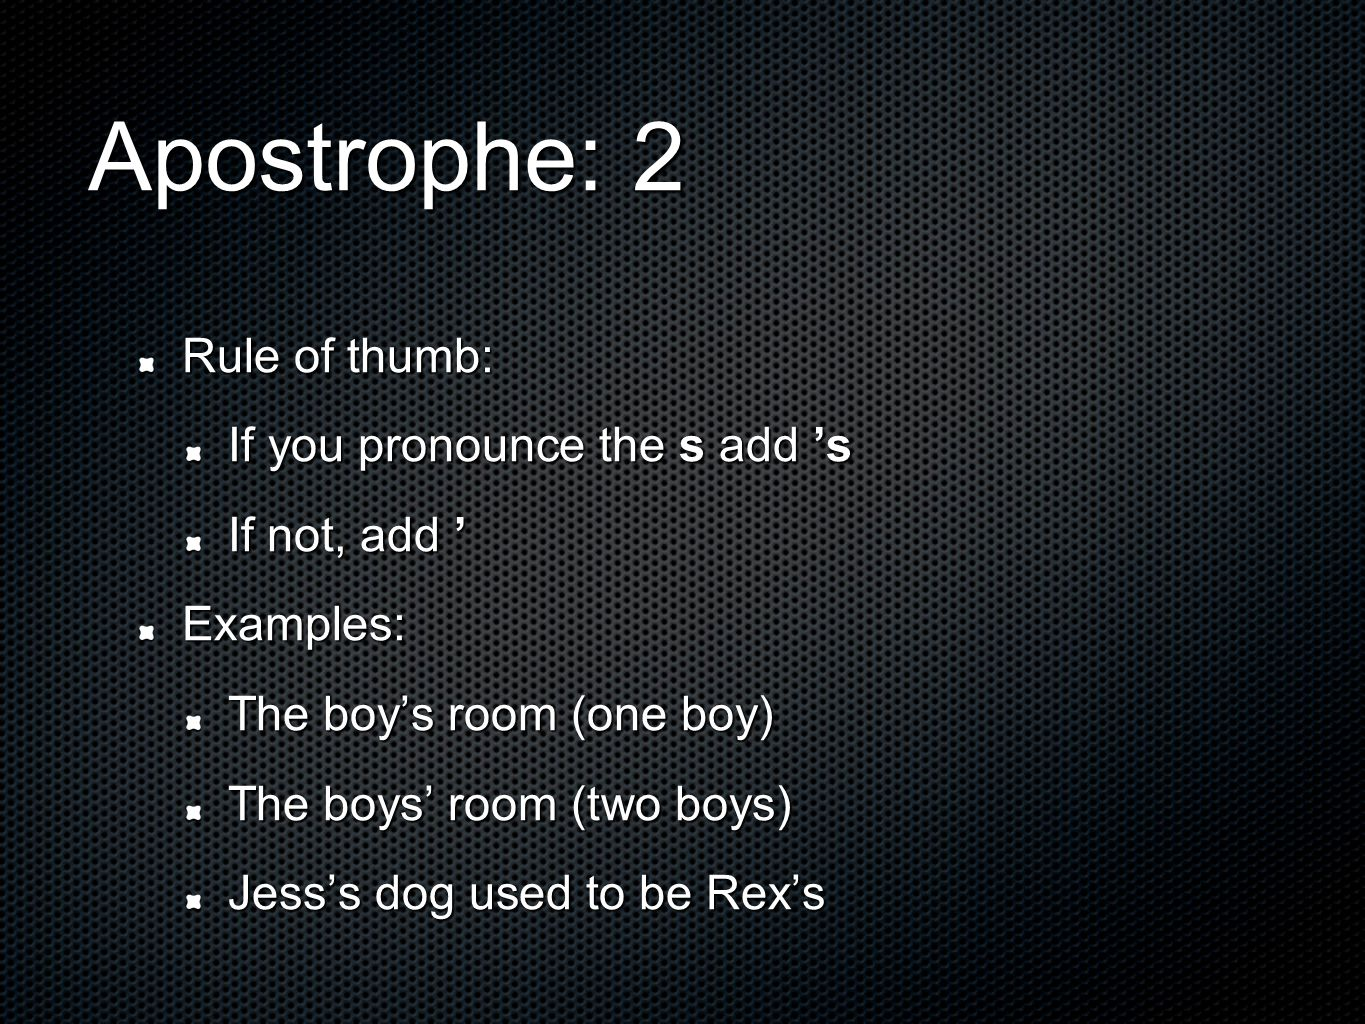 Apostrophe: 2 Rule of thumb: If you pronounce the s add 's If not, add ' Examples: The boy's room (one boy) The boys' room (two boys) Jess's dog used to be Rex's